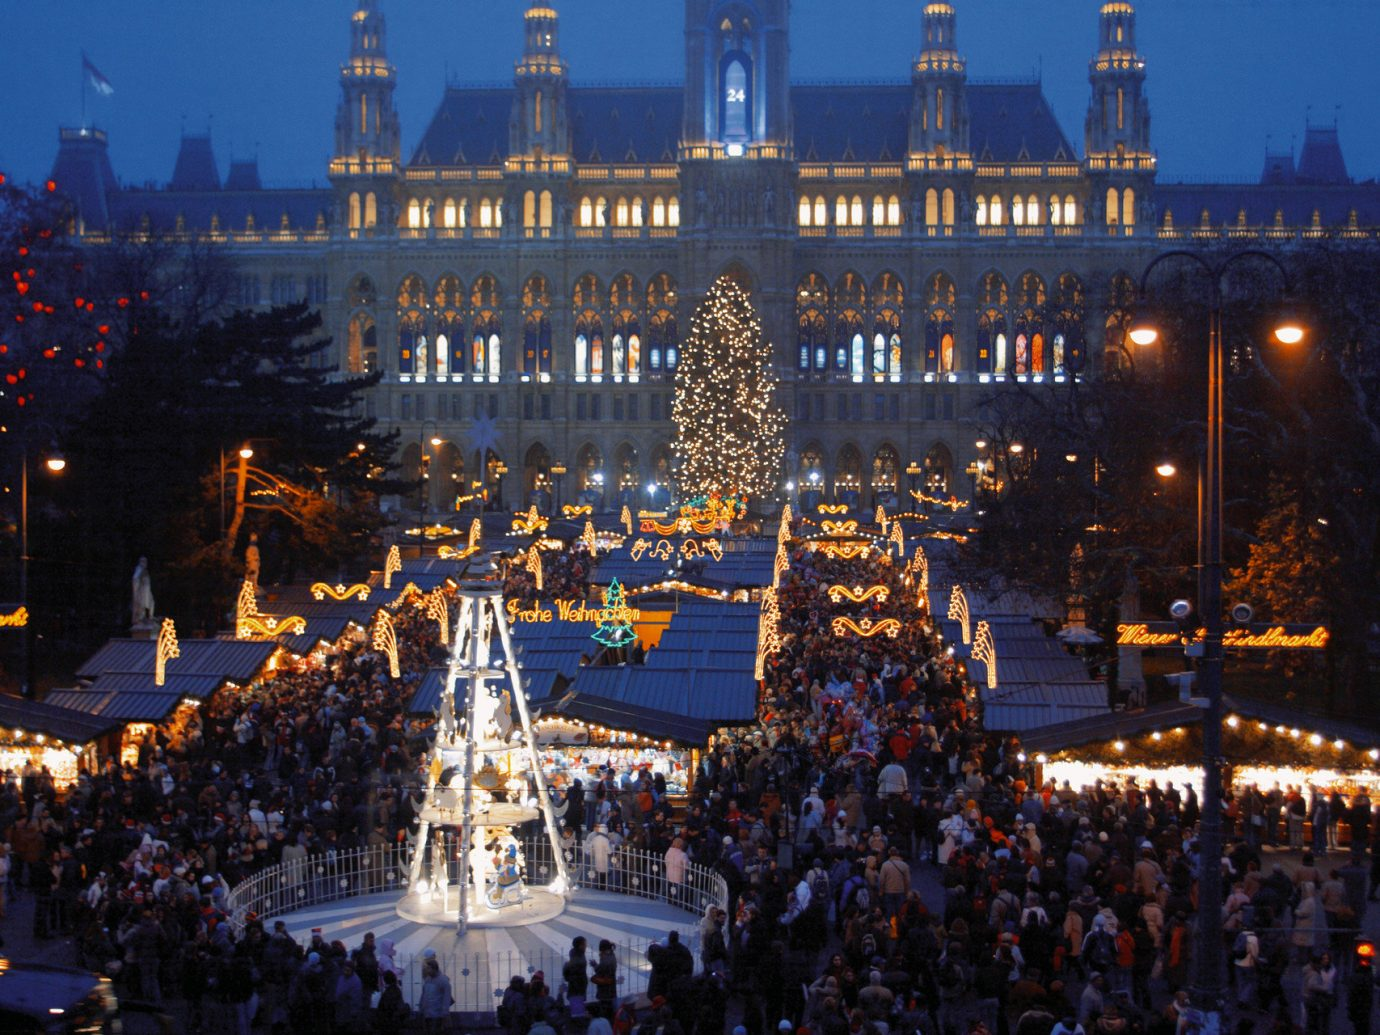 europe Trip Ideas outdoor crowd metropolis landmark night City human settlement light evening cityscape Downtown Resort town square ice rink Christmas amusement park bunch